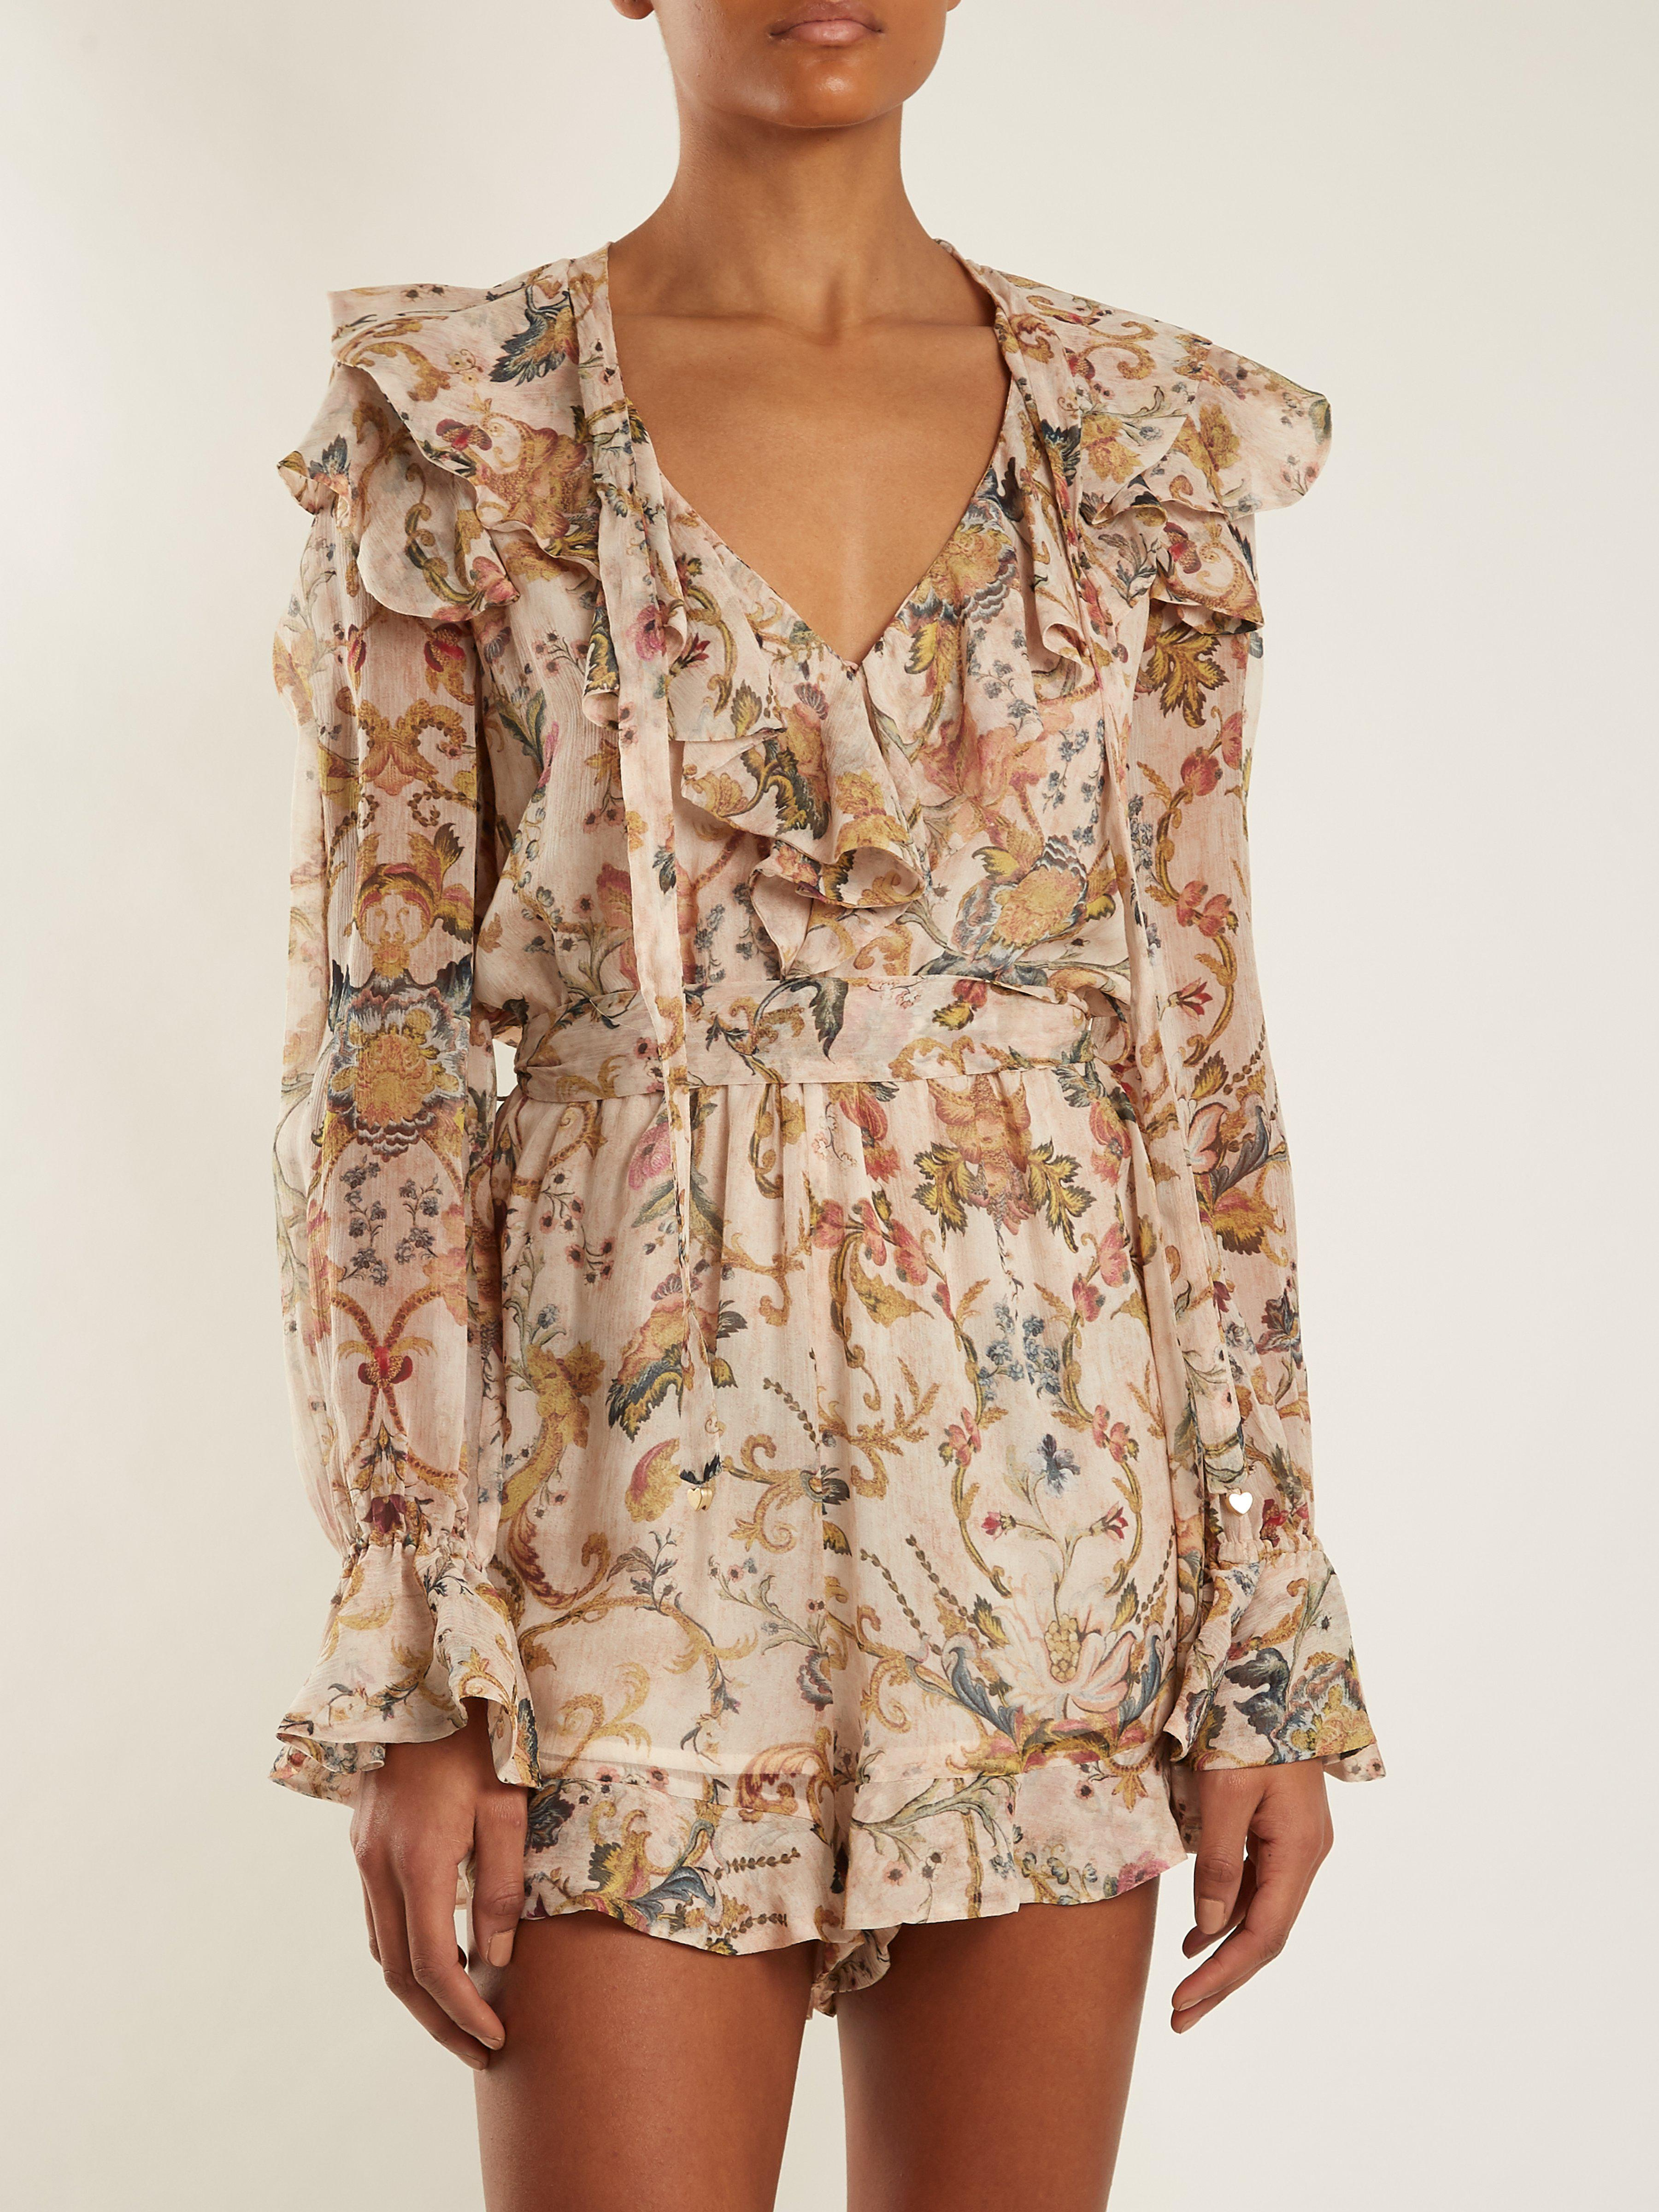 8f8ebe7931 Zimmermann Painted Heart Cascade Floral Print Silk Playsuit - Lyst